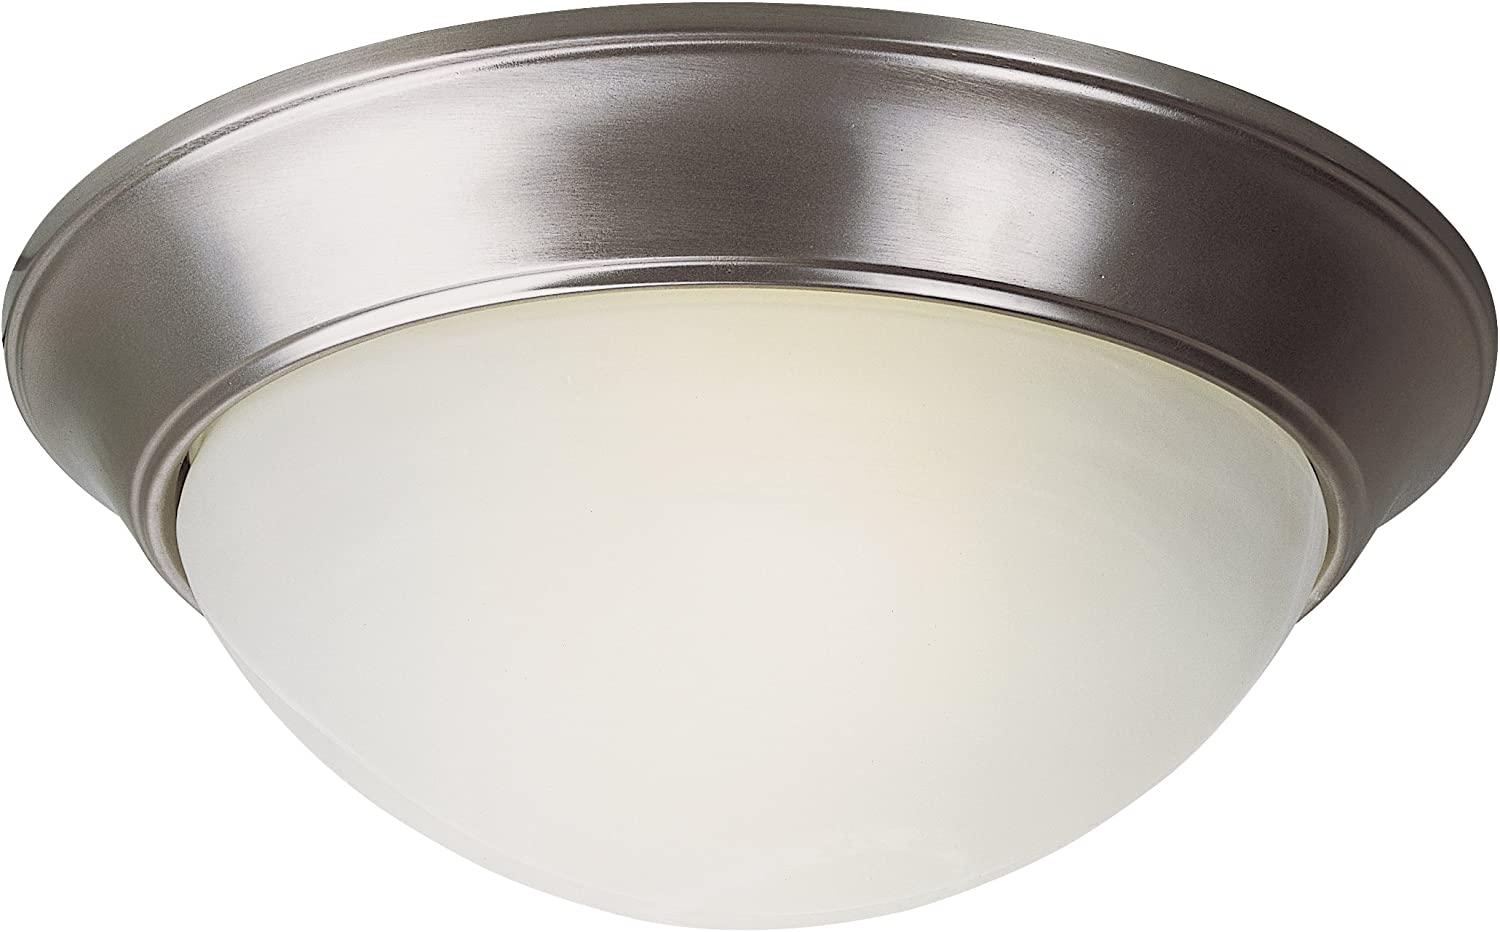 Trans Globe Imports LED-57702 BN LED Out OFFer Flushmount Transitional Max 51% OFF